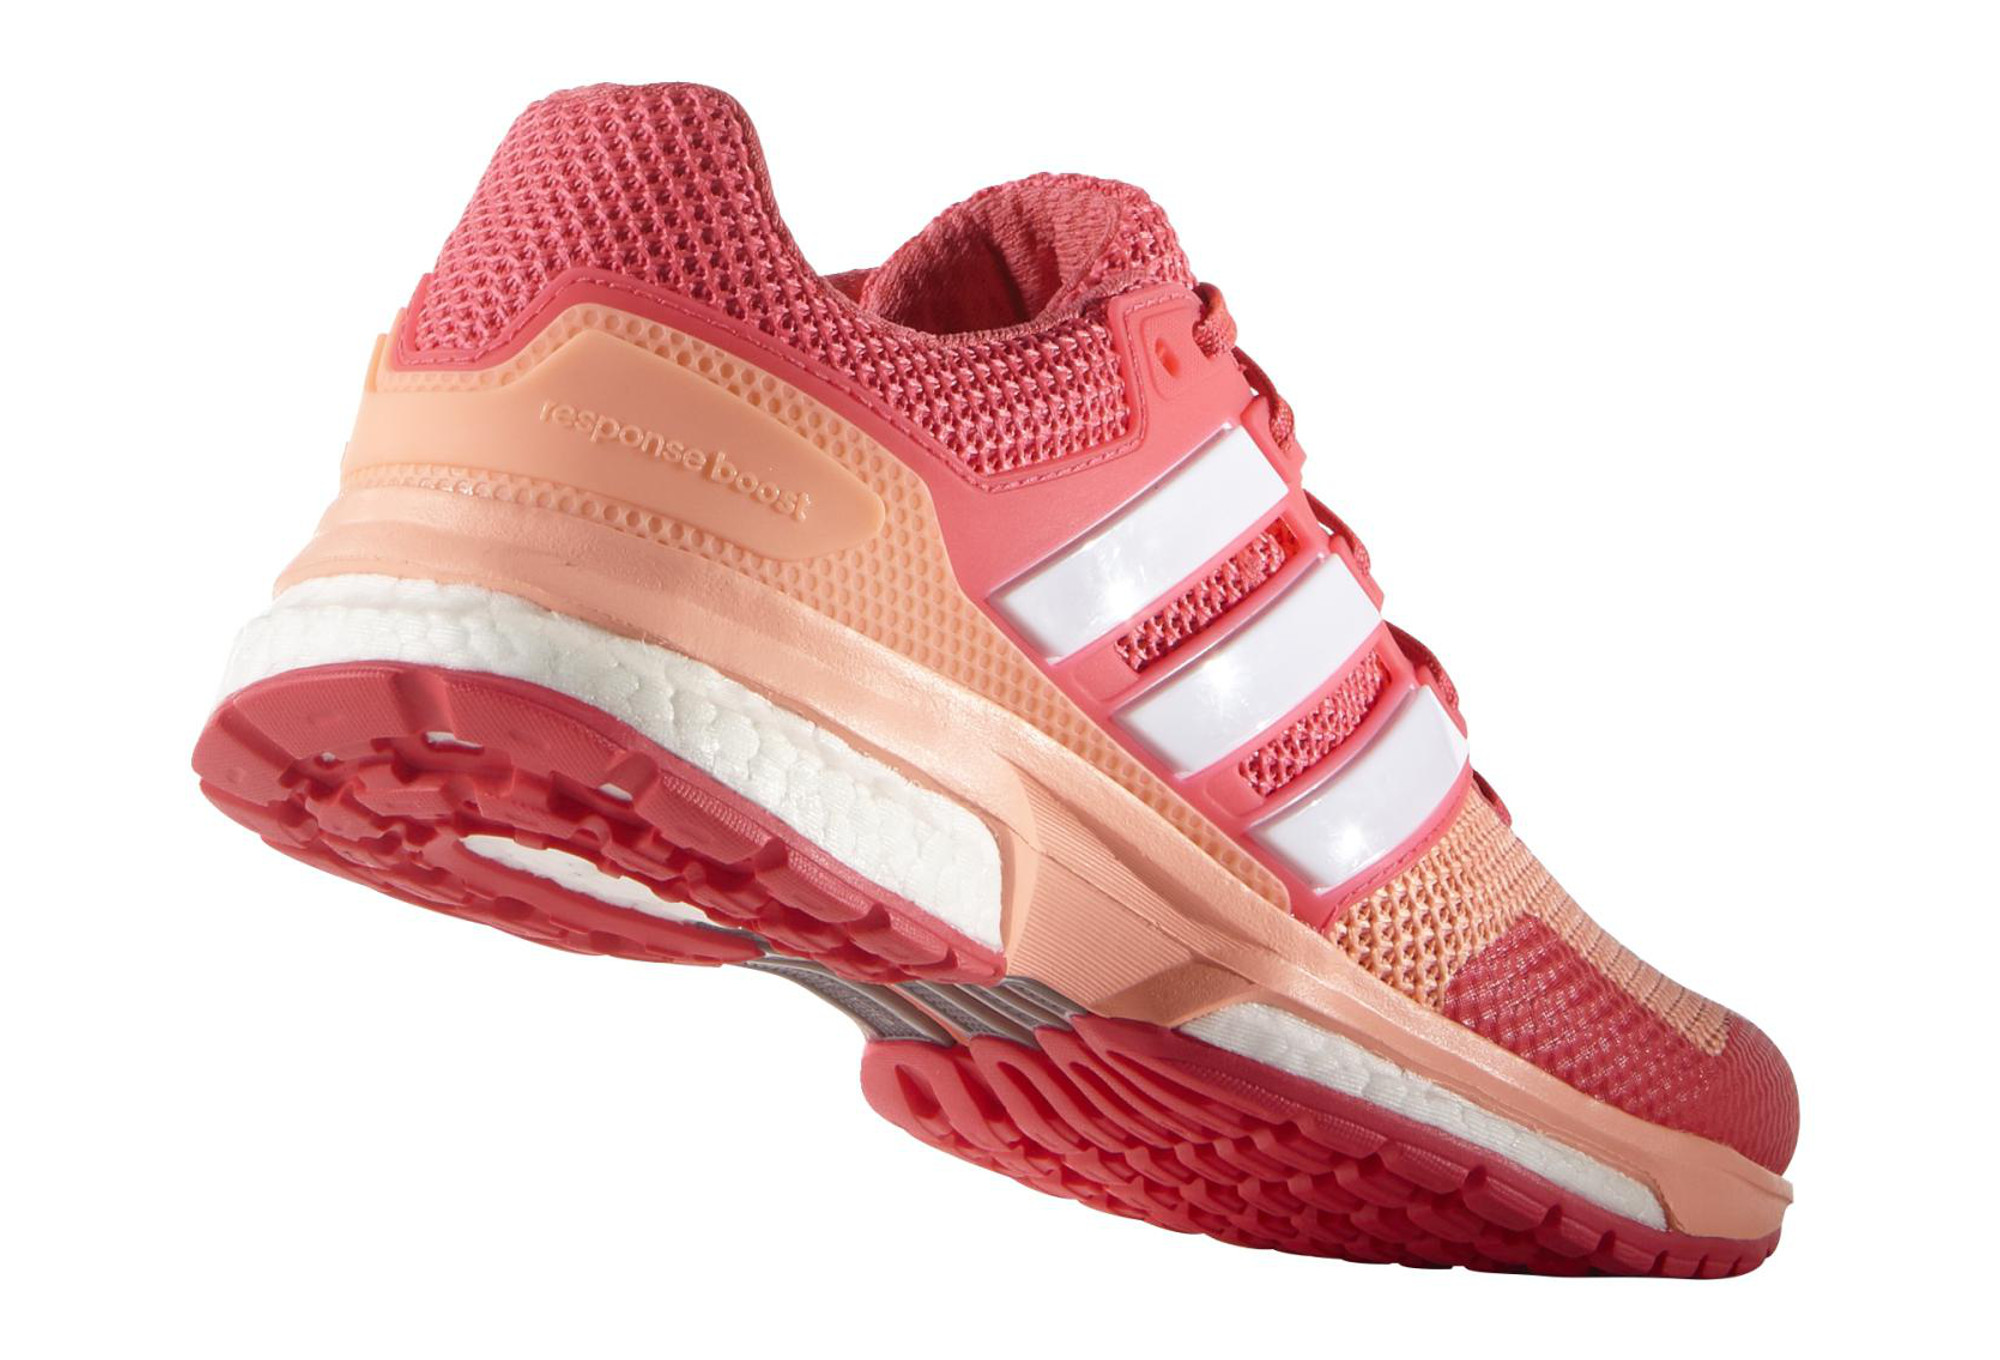 meilleure sélection b09c2 9b9b4 adidas RESPONSE BOOST 2 Pair of Shoes Pink Women